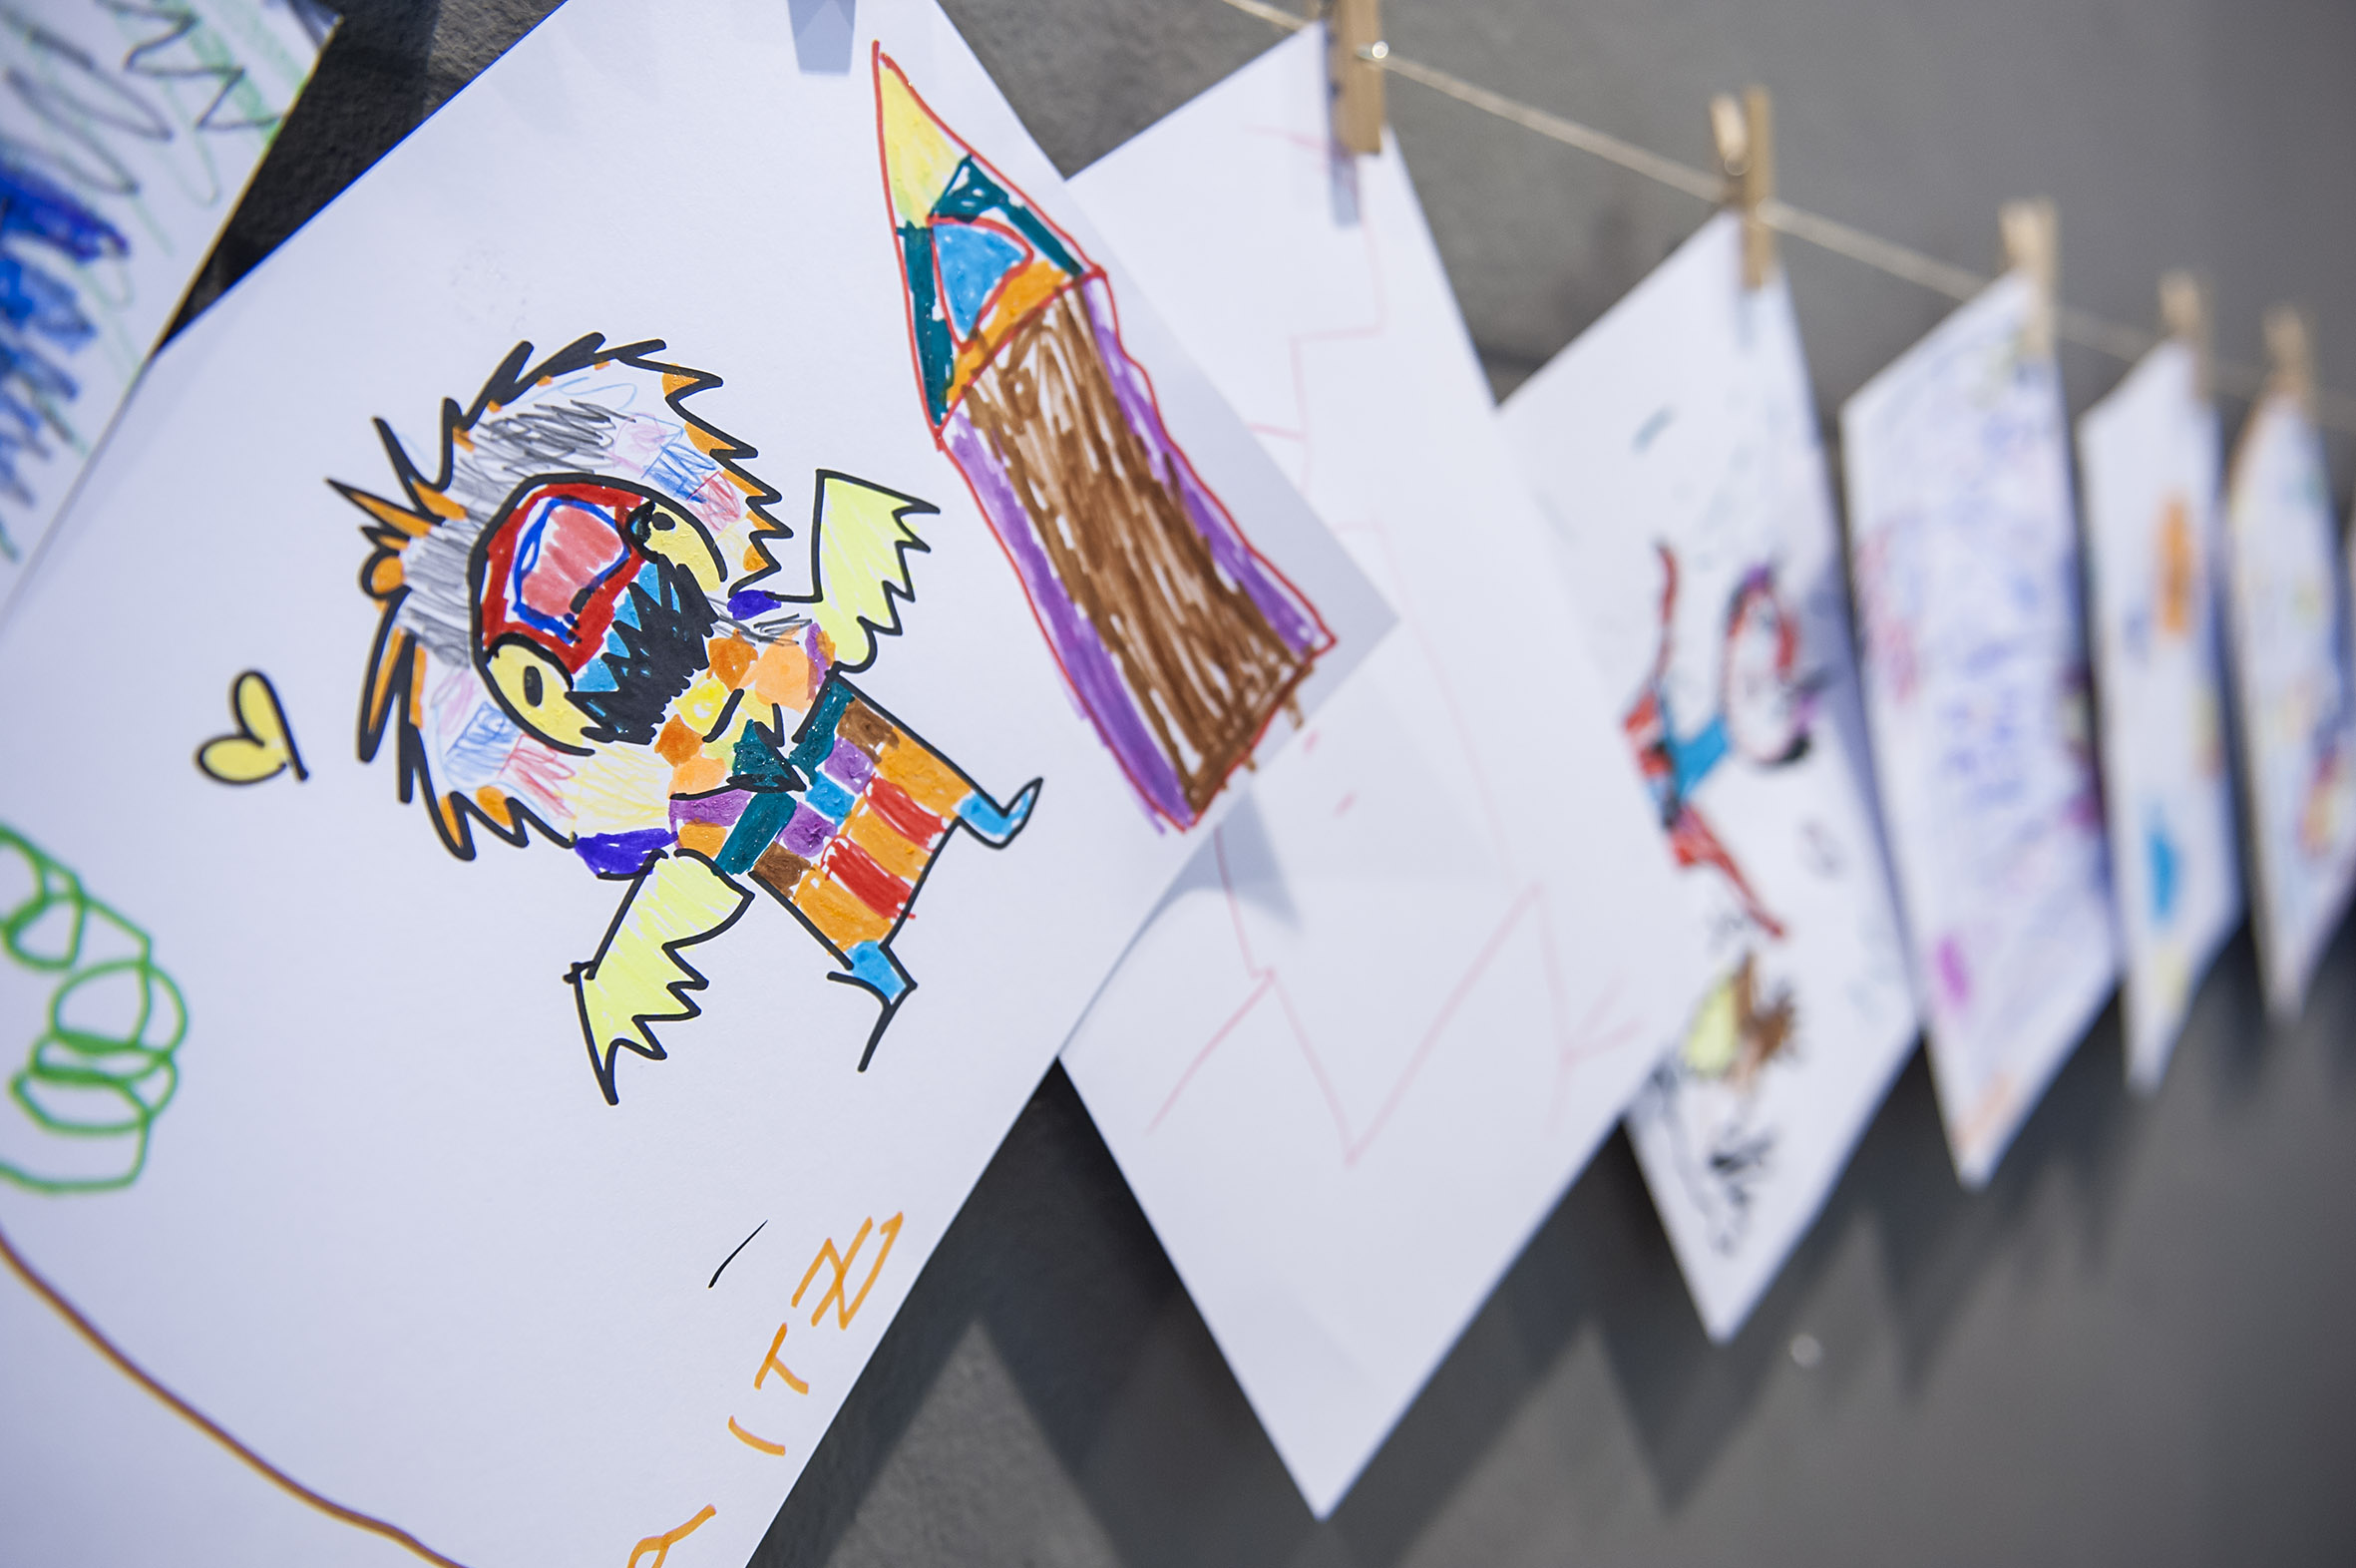 YAP_Ausstellung_URBAN-NATION_The-Monster-Project_04